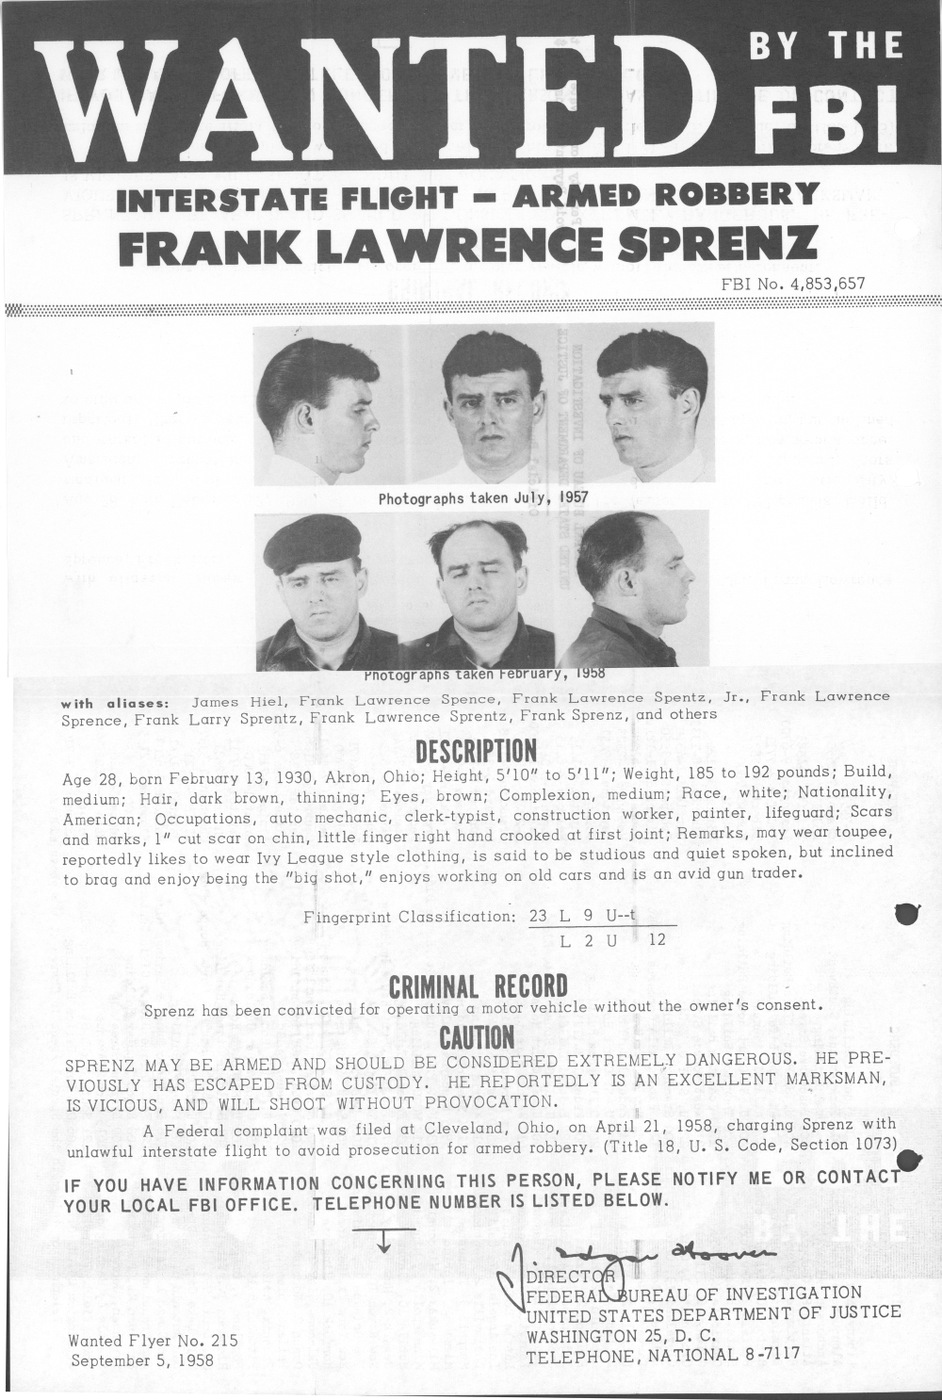 Wanted by the FBI poster for former Ten Most Wanted Fugitive Frank Sprenz